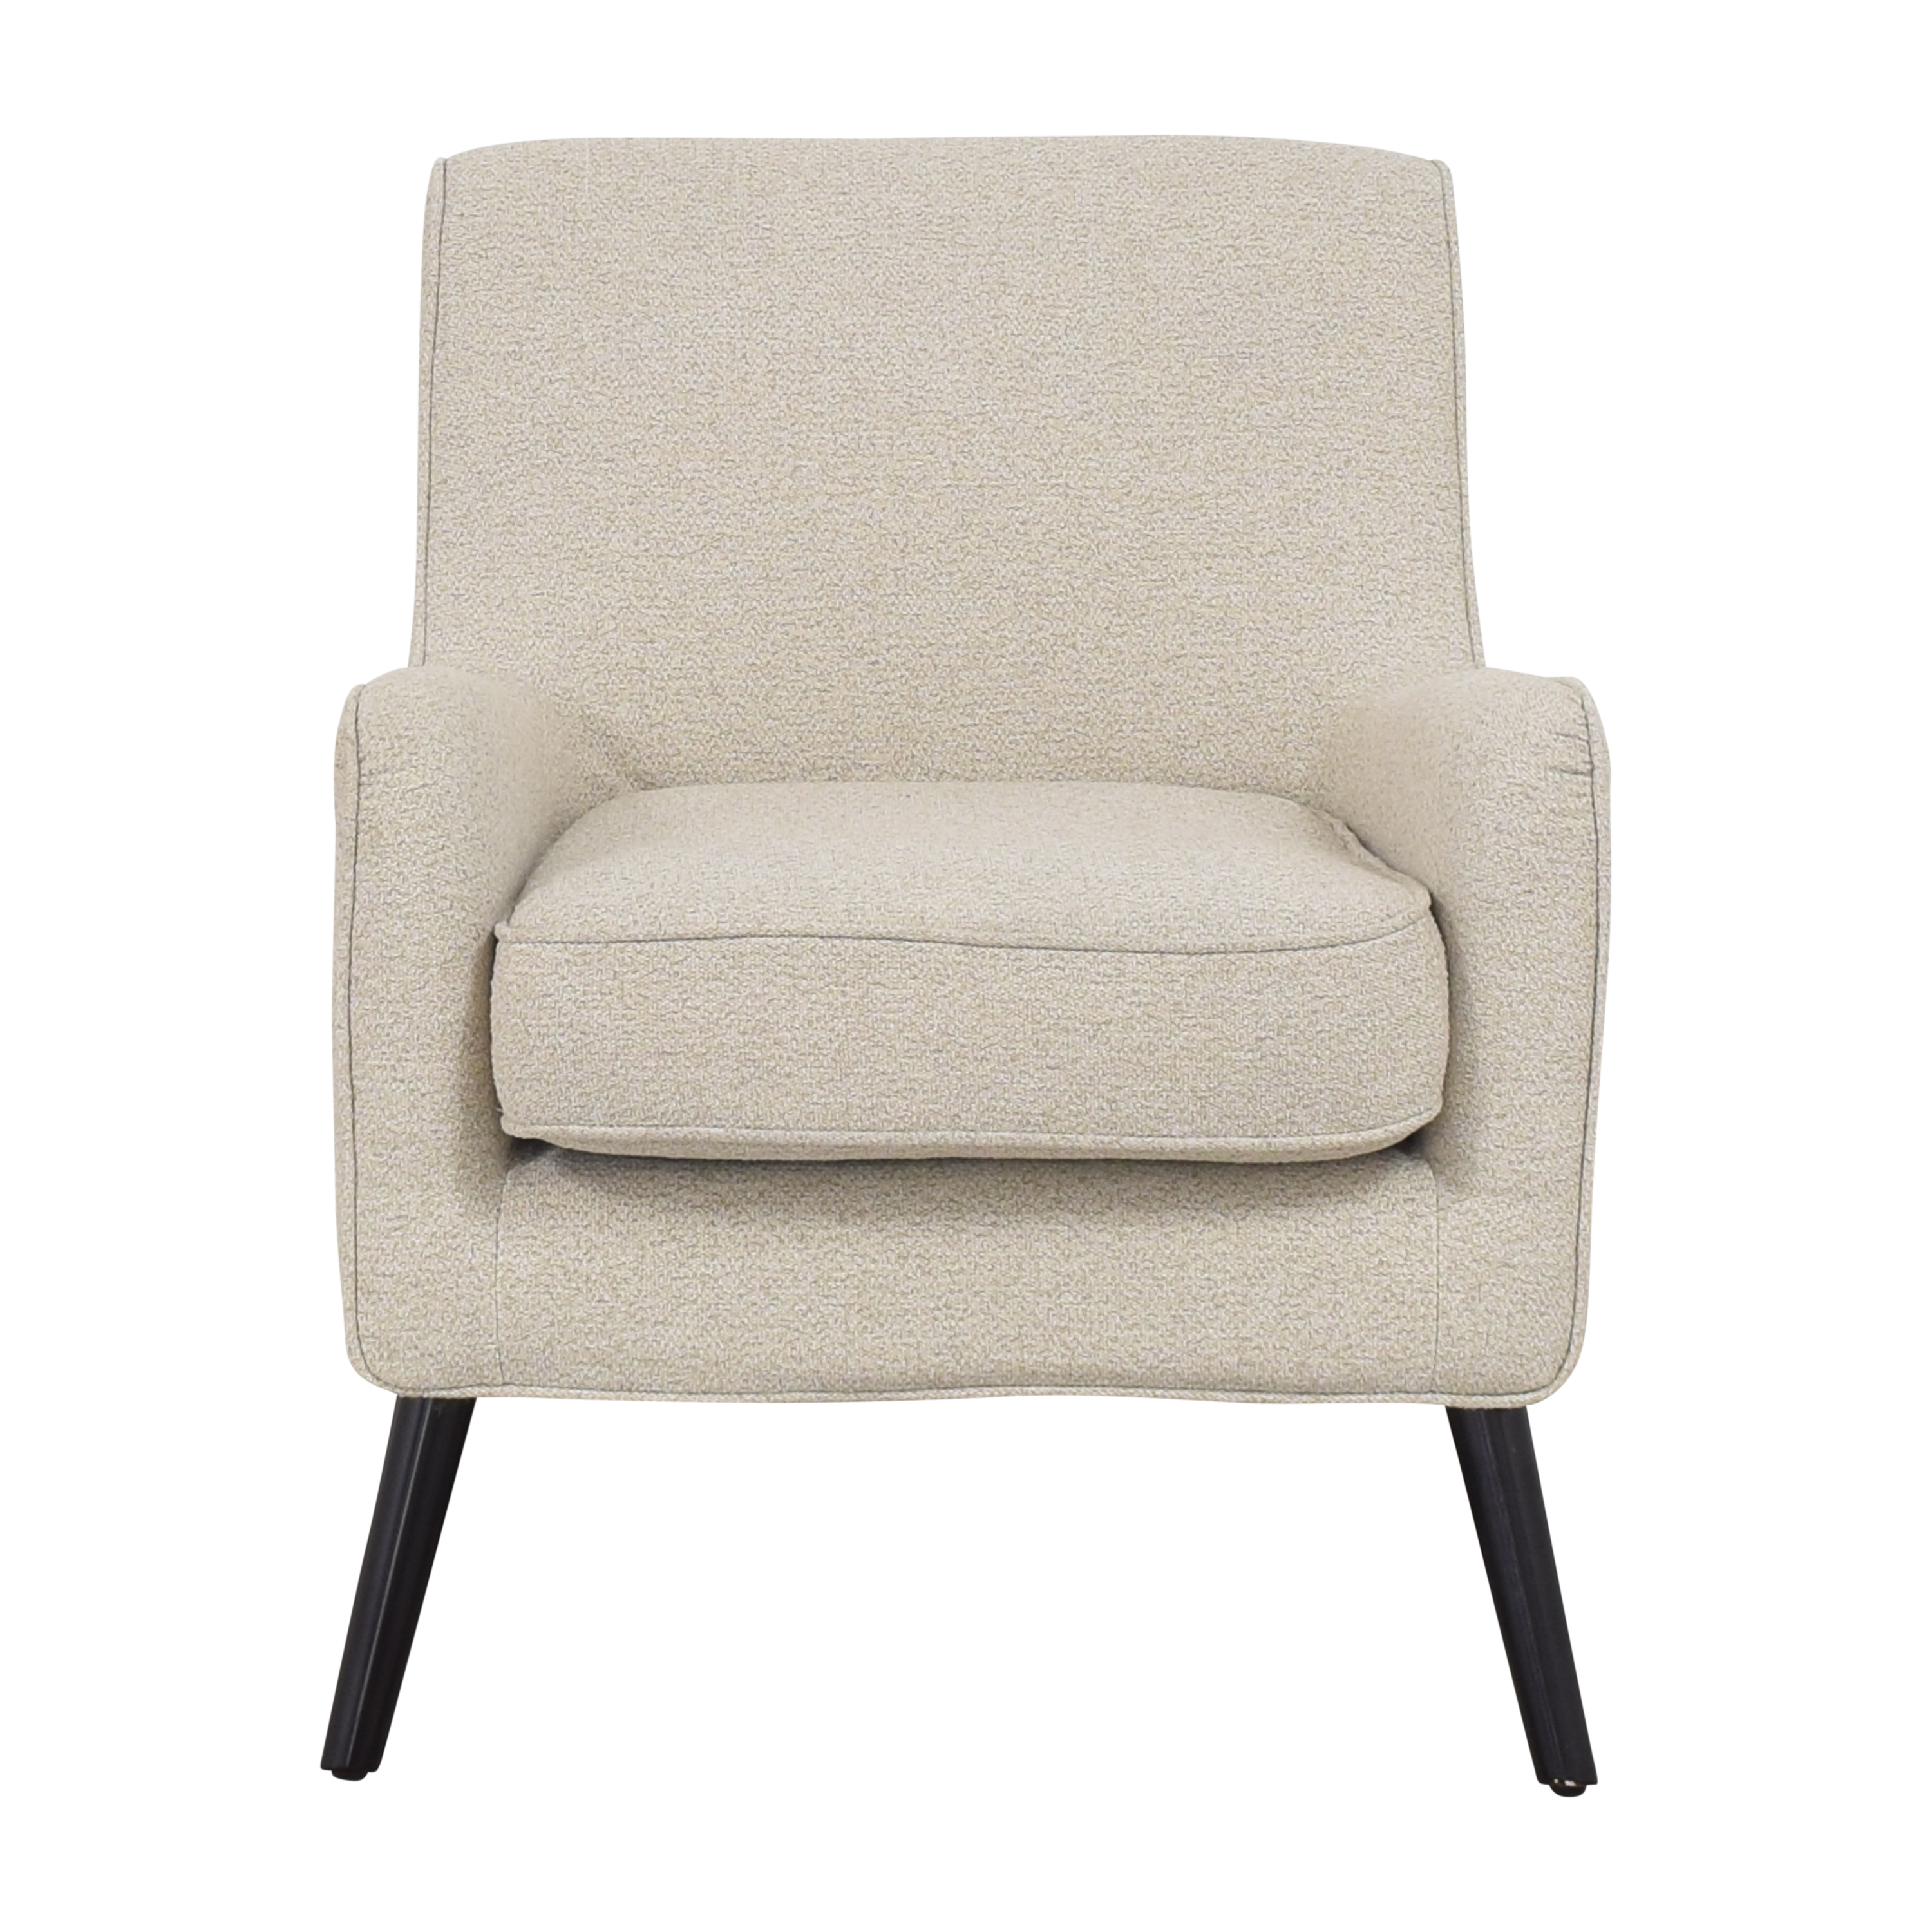 West Elm Book Nook Armchair / Chairs